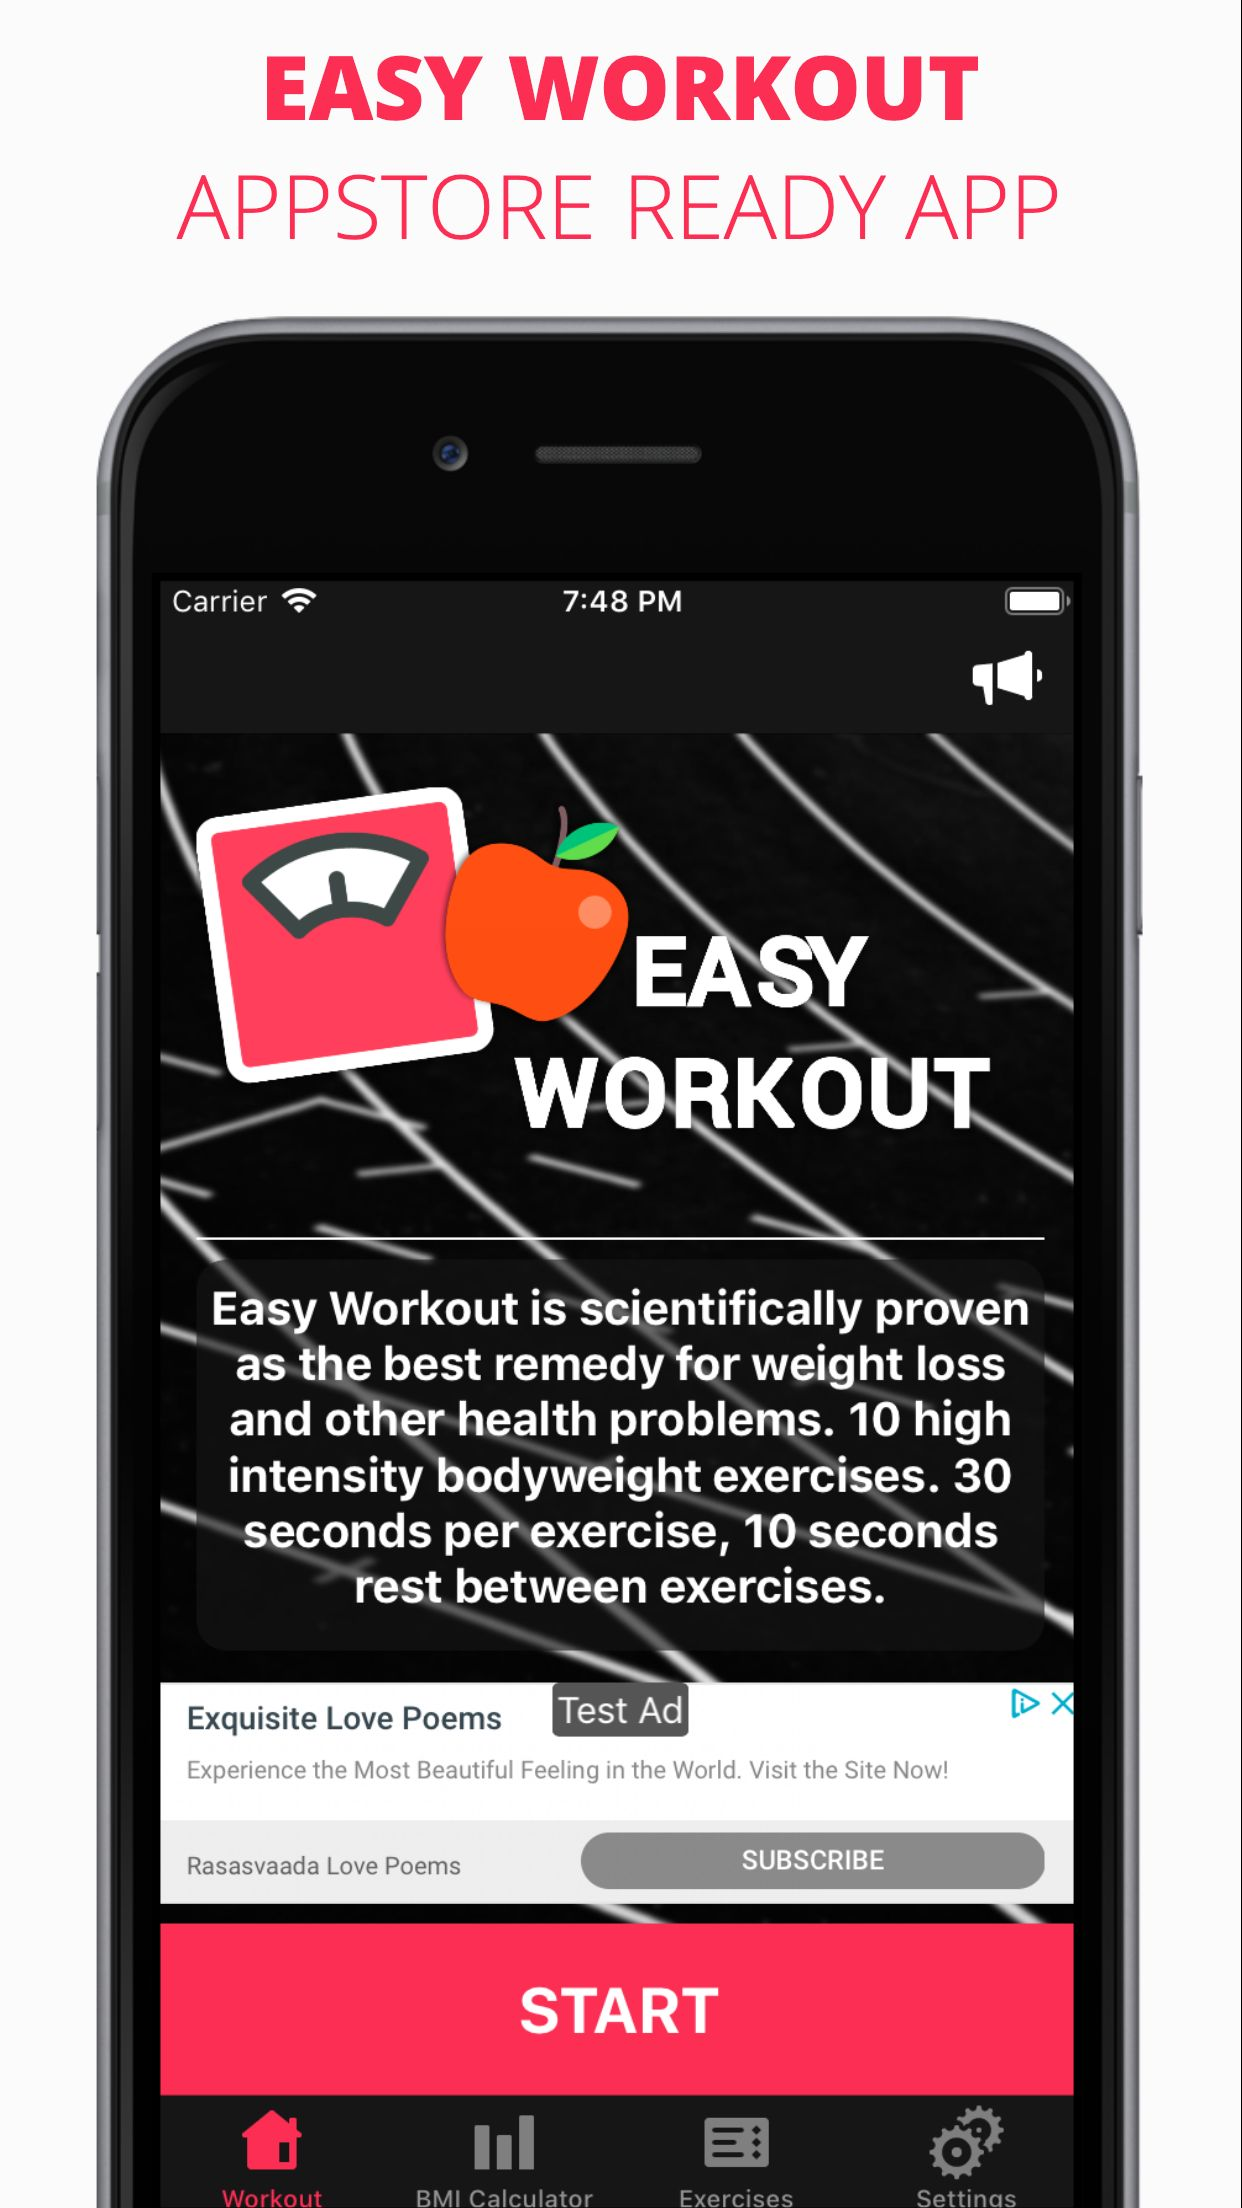 Easy Workout - iOS Fitness Application  Screenshot 1